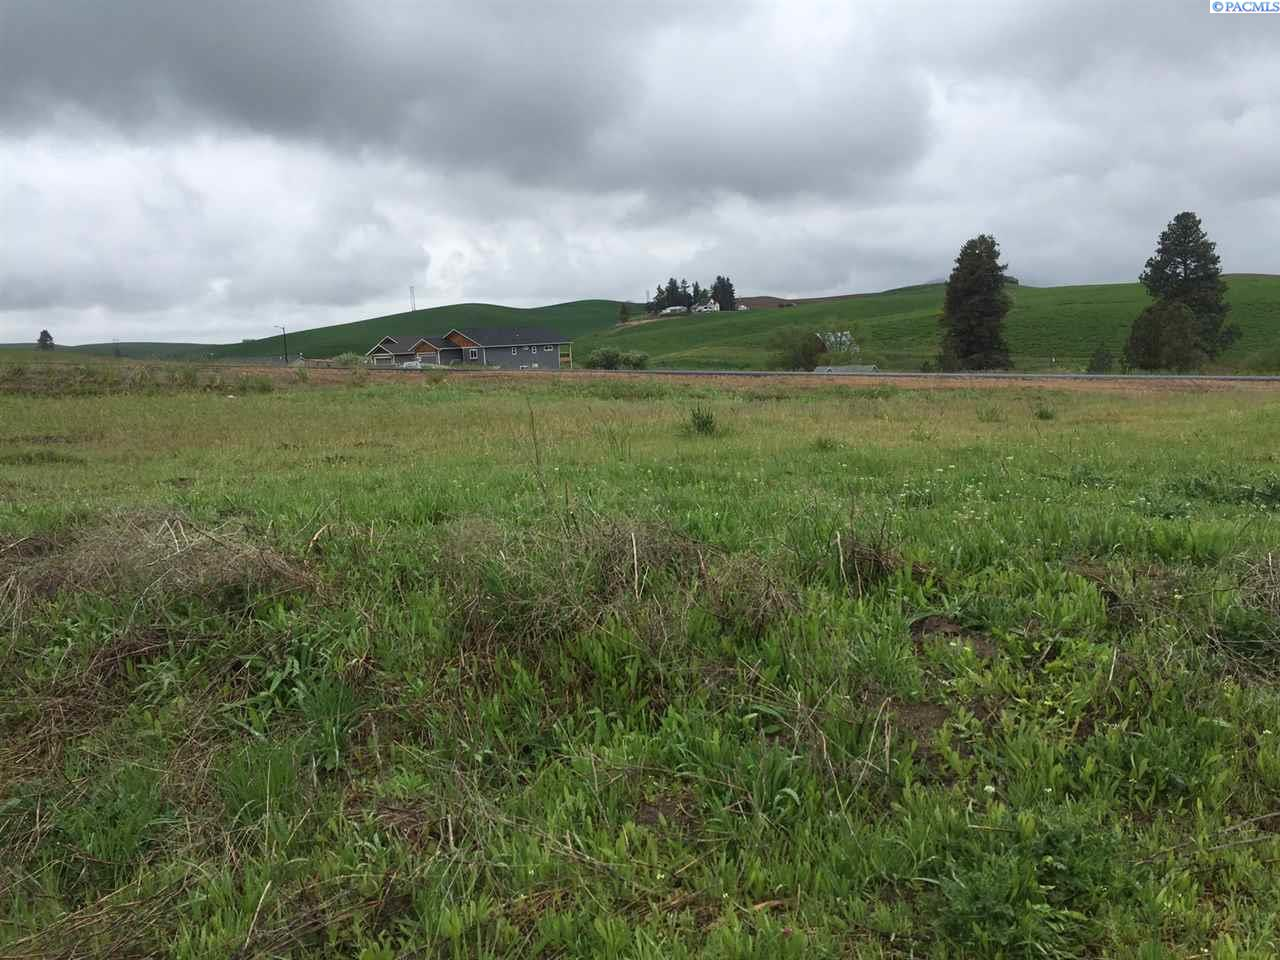 Land / Lots for Sale at Tbd Palouse Cove Road Tbd Palouse Cove Road Palouse, Washington 99161 United States